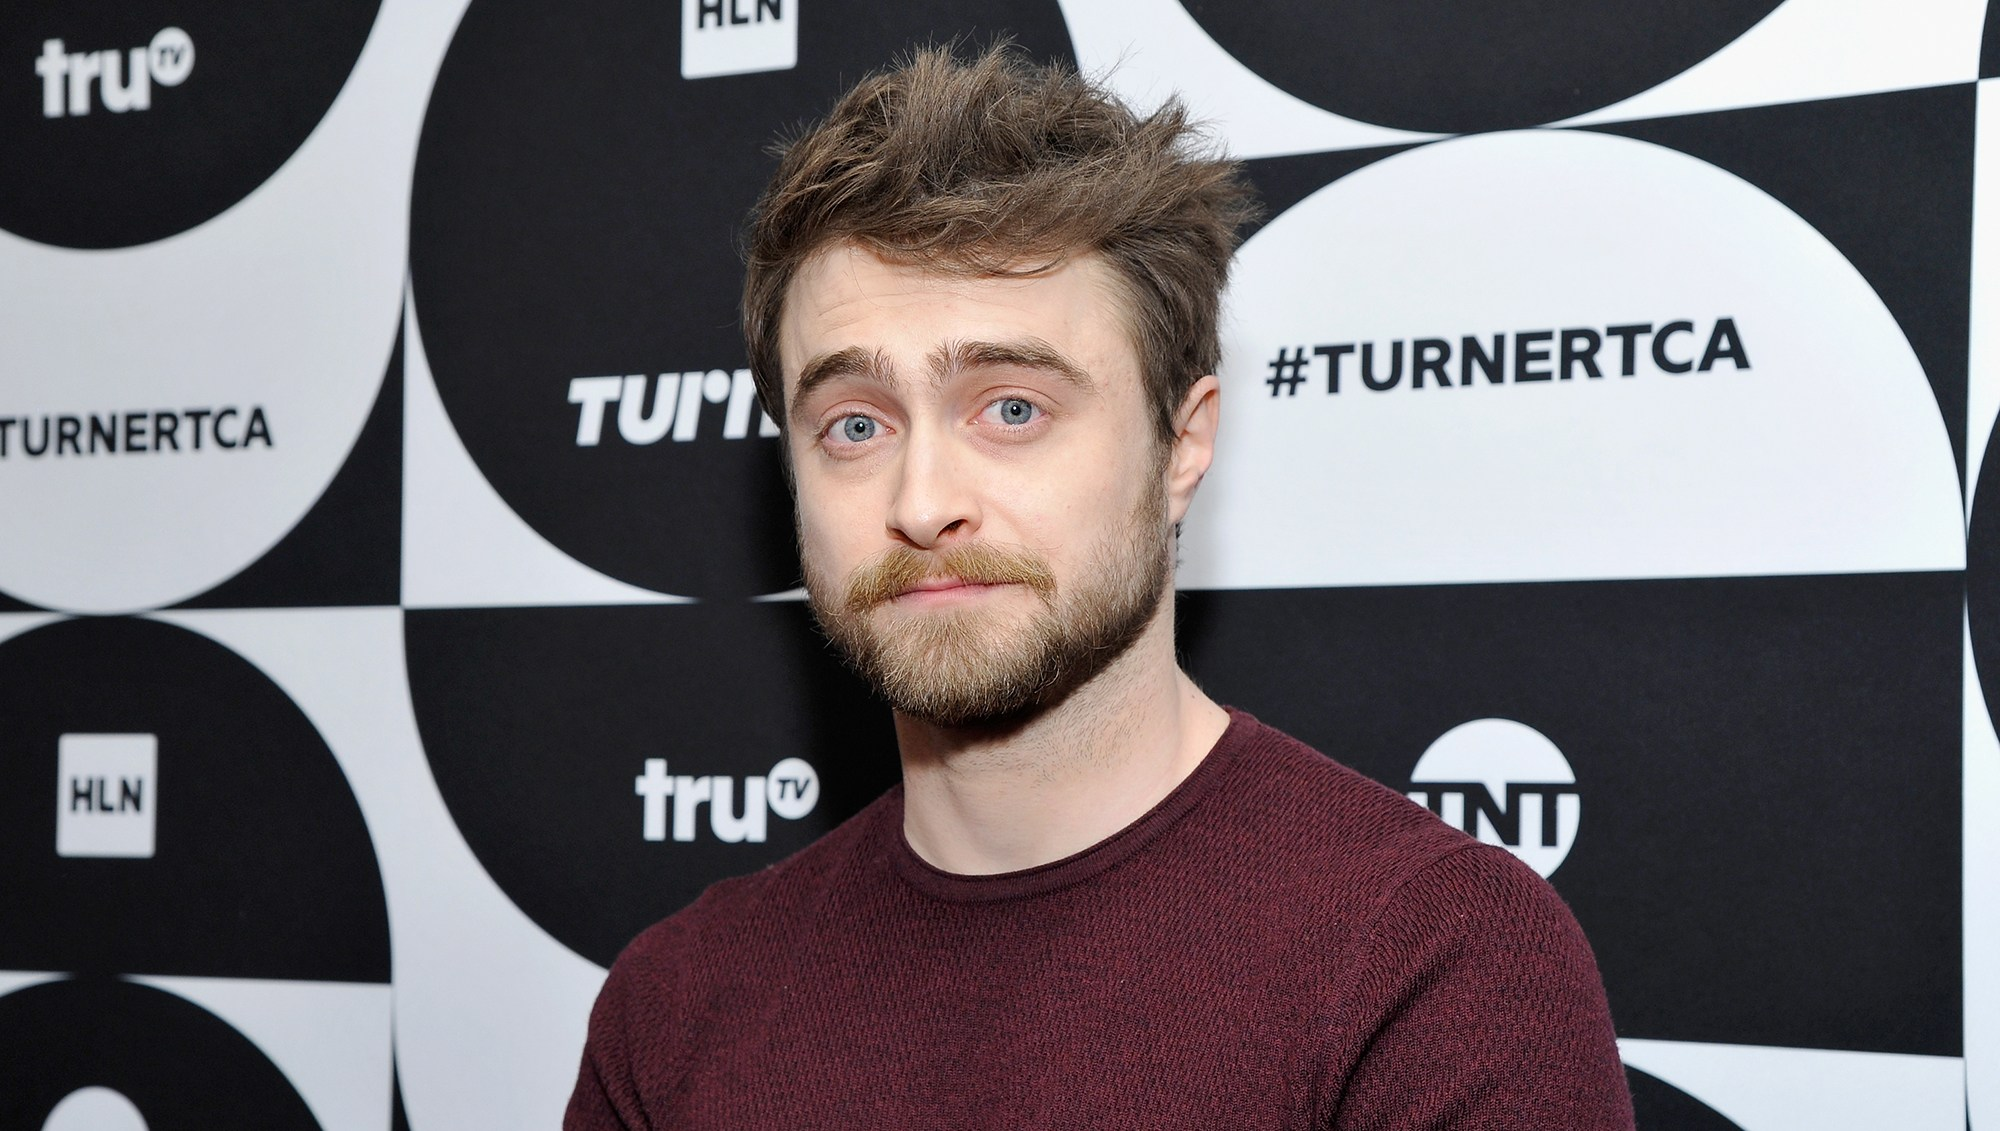 Daniel Radcliffe Developed a Pattern of Getting 'Very Drunk' to Cope With 'Harry Potter' Fame